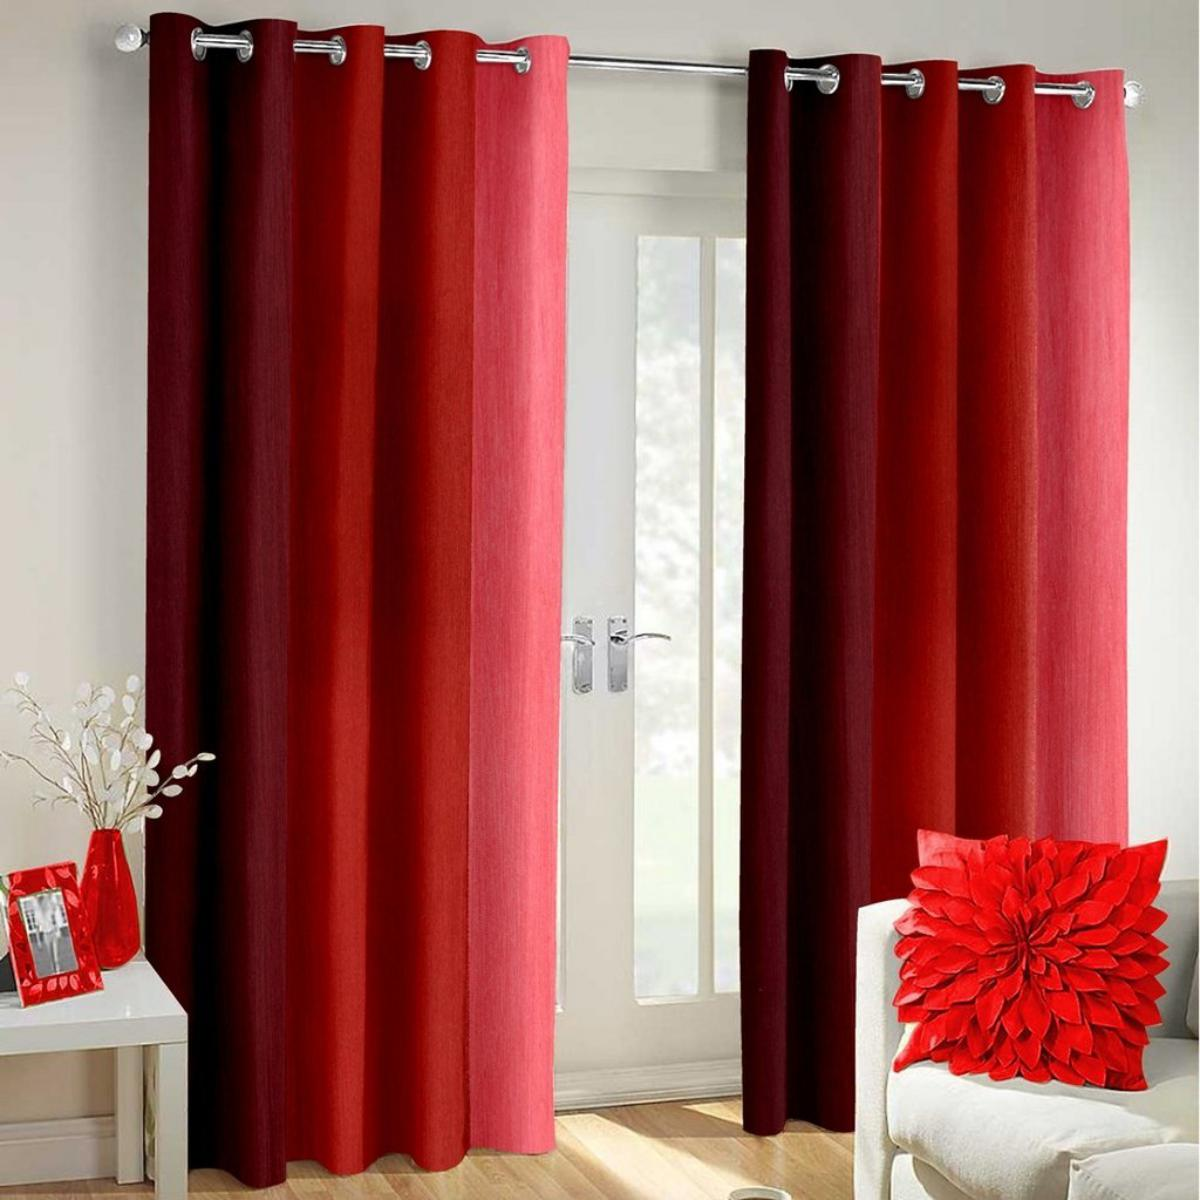 IndianOnlineMall shaded set of 2 long crush curtain(4x5ft)